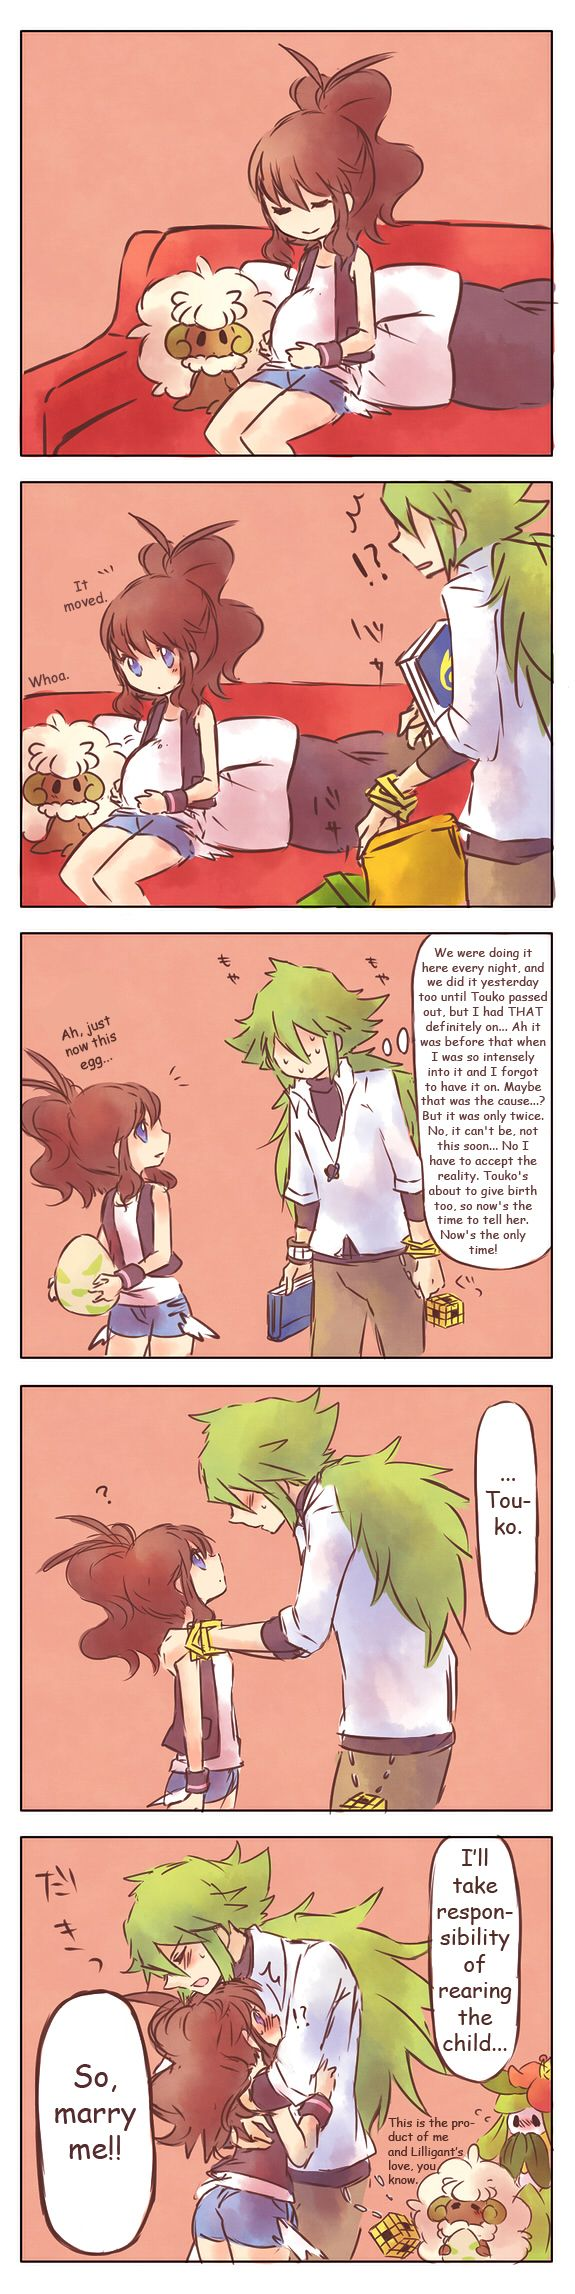 Lol, N thought she was pregnant XD  (No Ship, thought it was cute) White Pregnant.....Not! by Sin-D-Hellian on DeviantArt